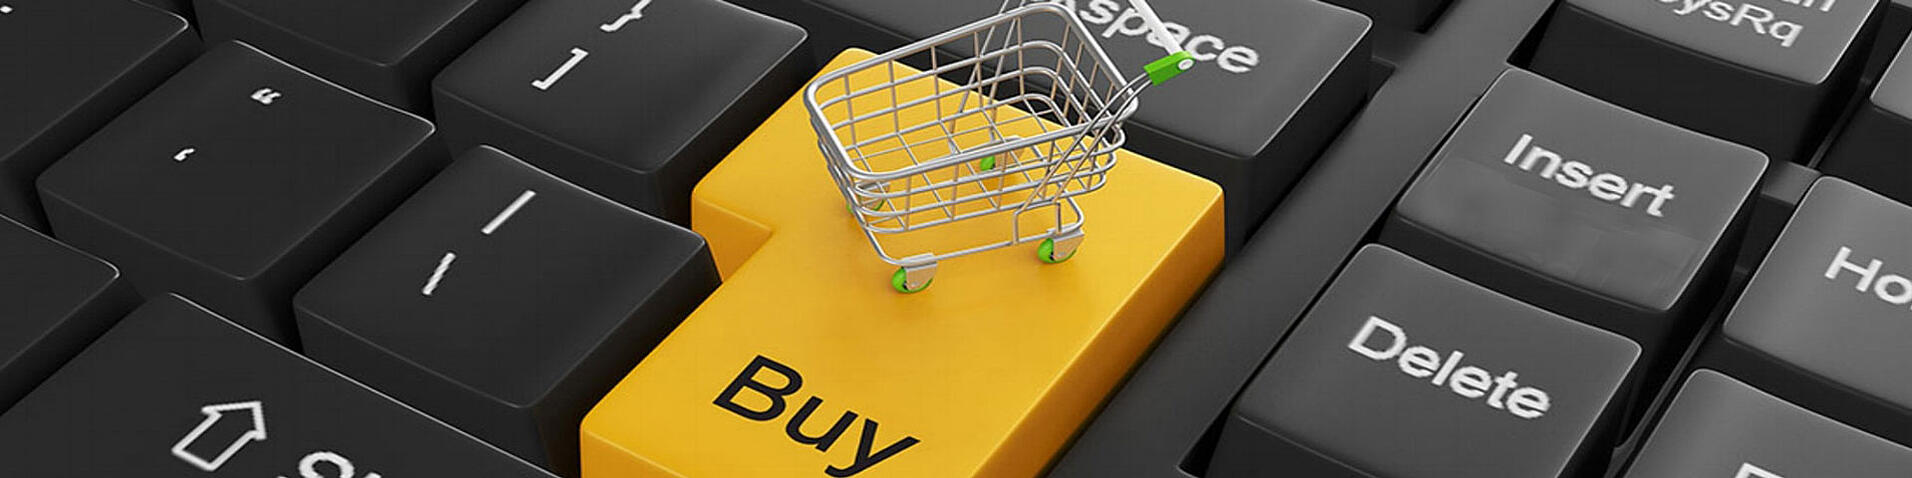 Ecommerce_sales-203833-edited.jpg